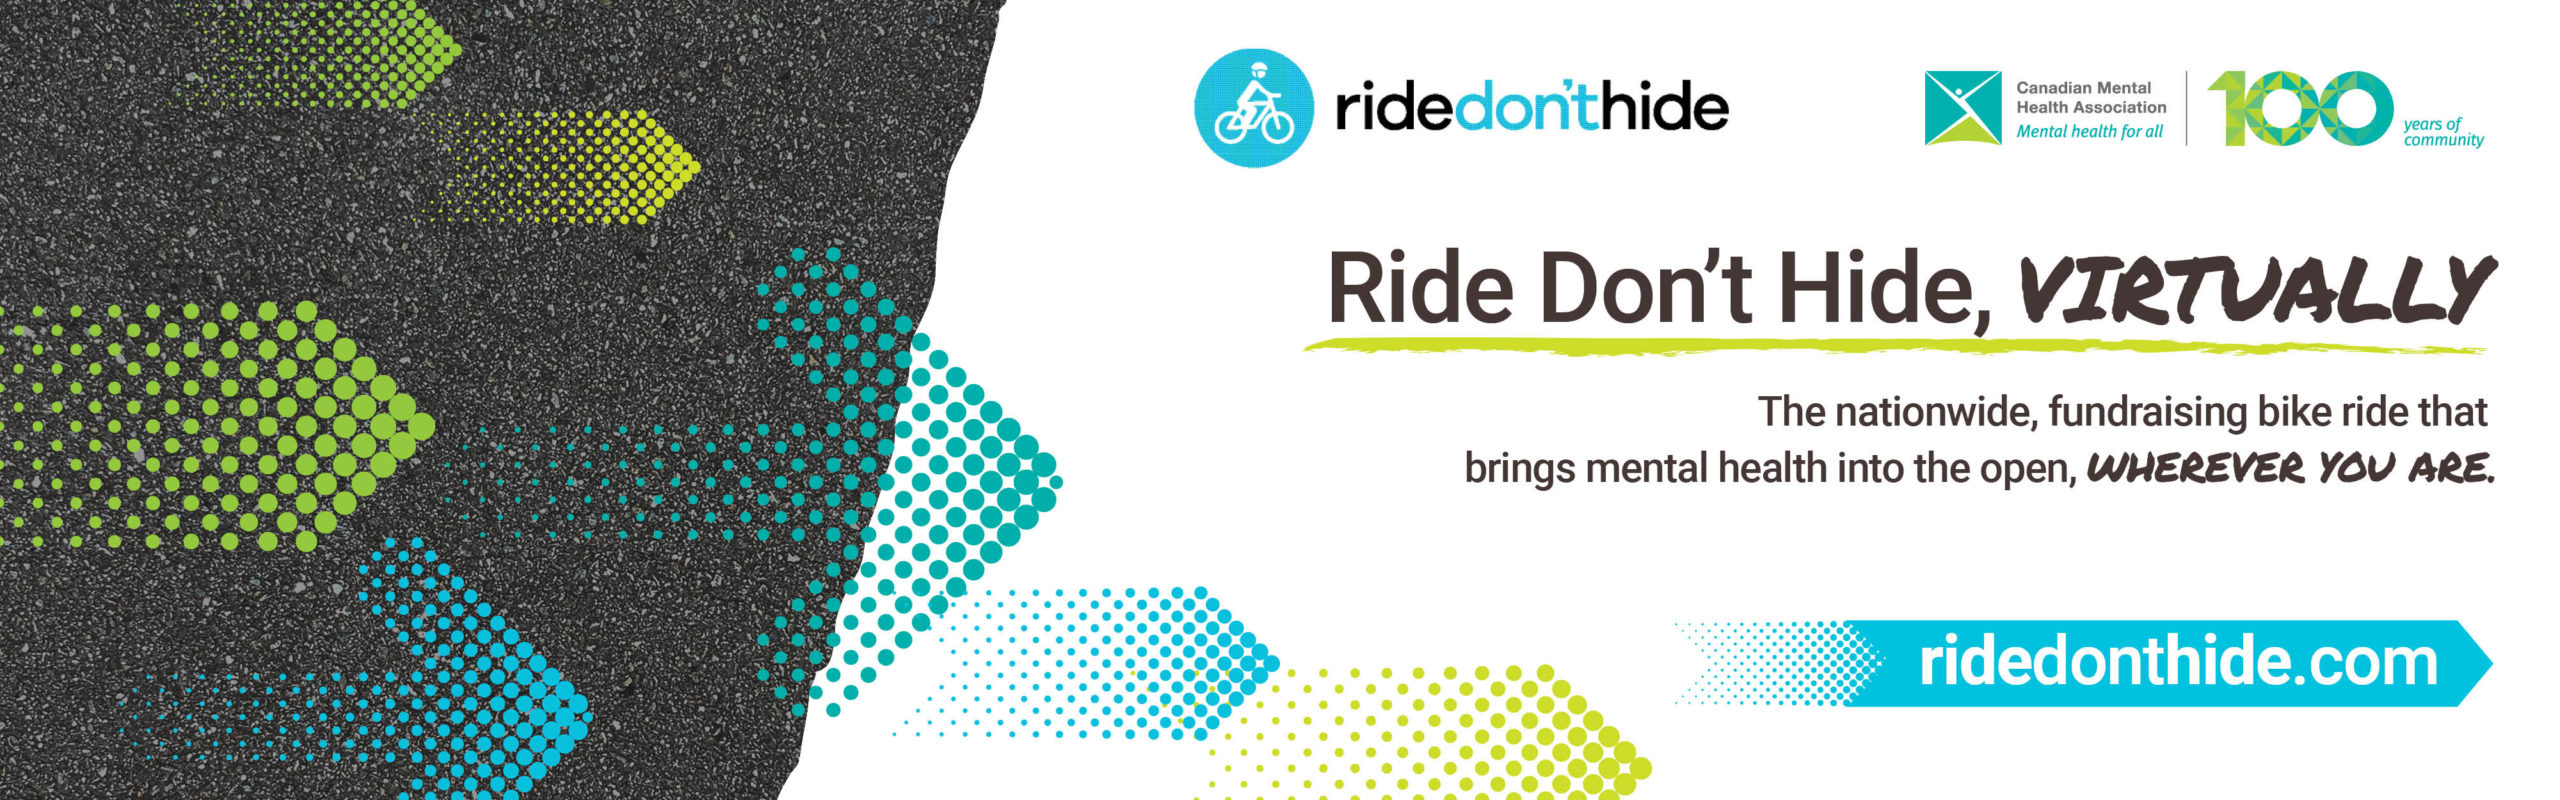 Ride Don't Hide Virtually